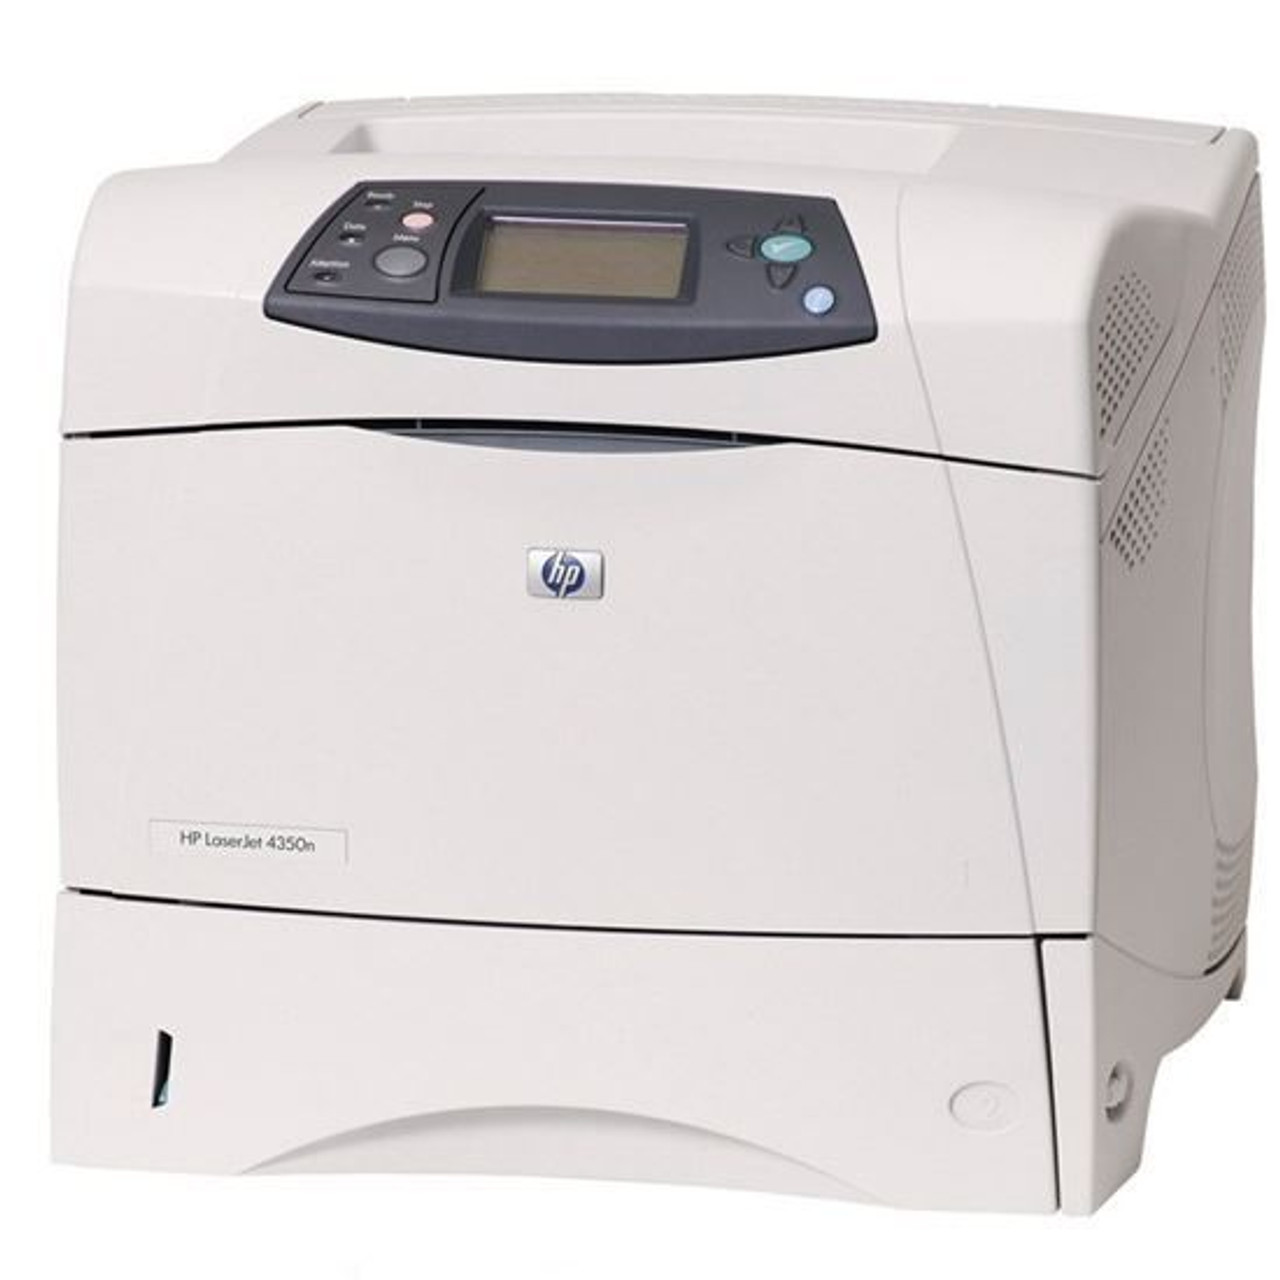 HP LaserJet 4350n - Q5407A - HP Laser Printer for sale